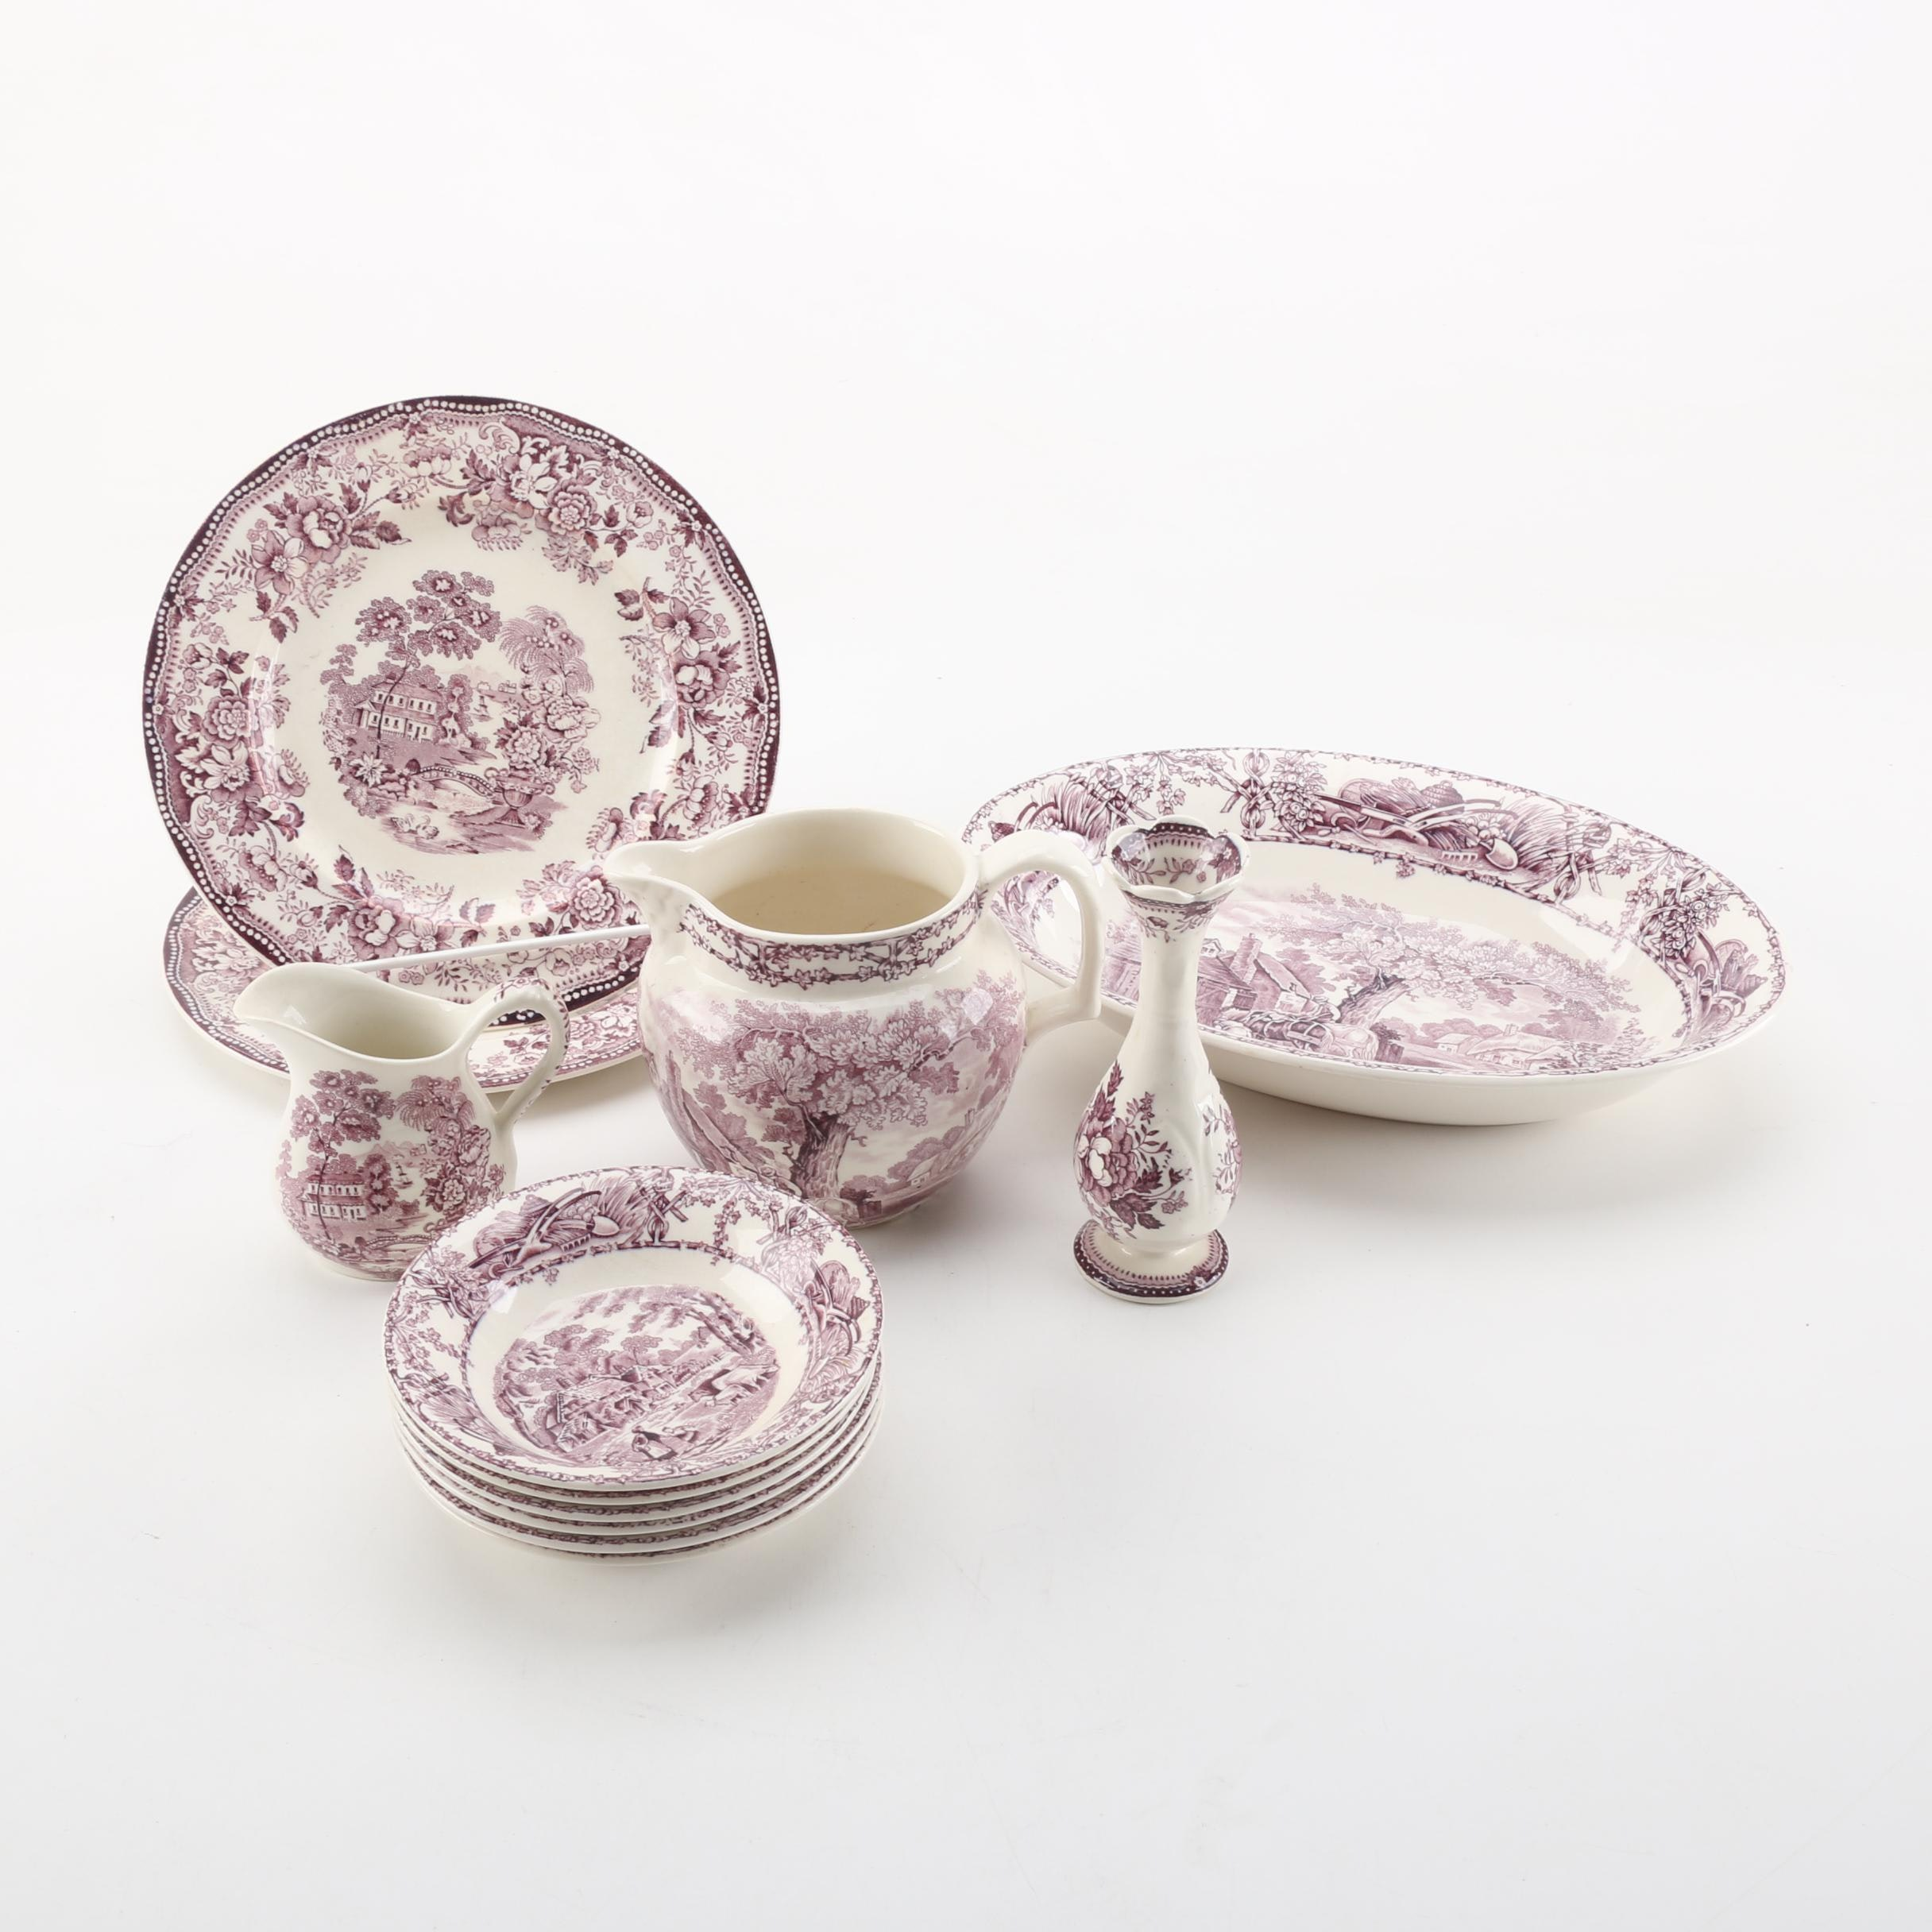 Clarice Cliff for Royal Staffordshire and A.J. Wilkinson Mulberry Transferware